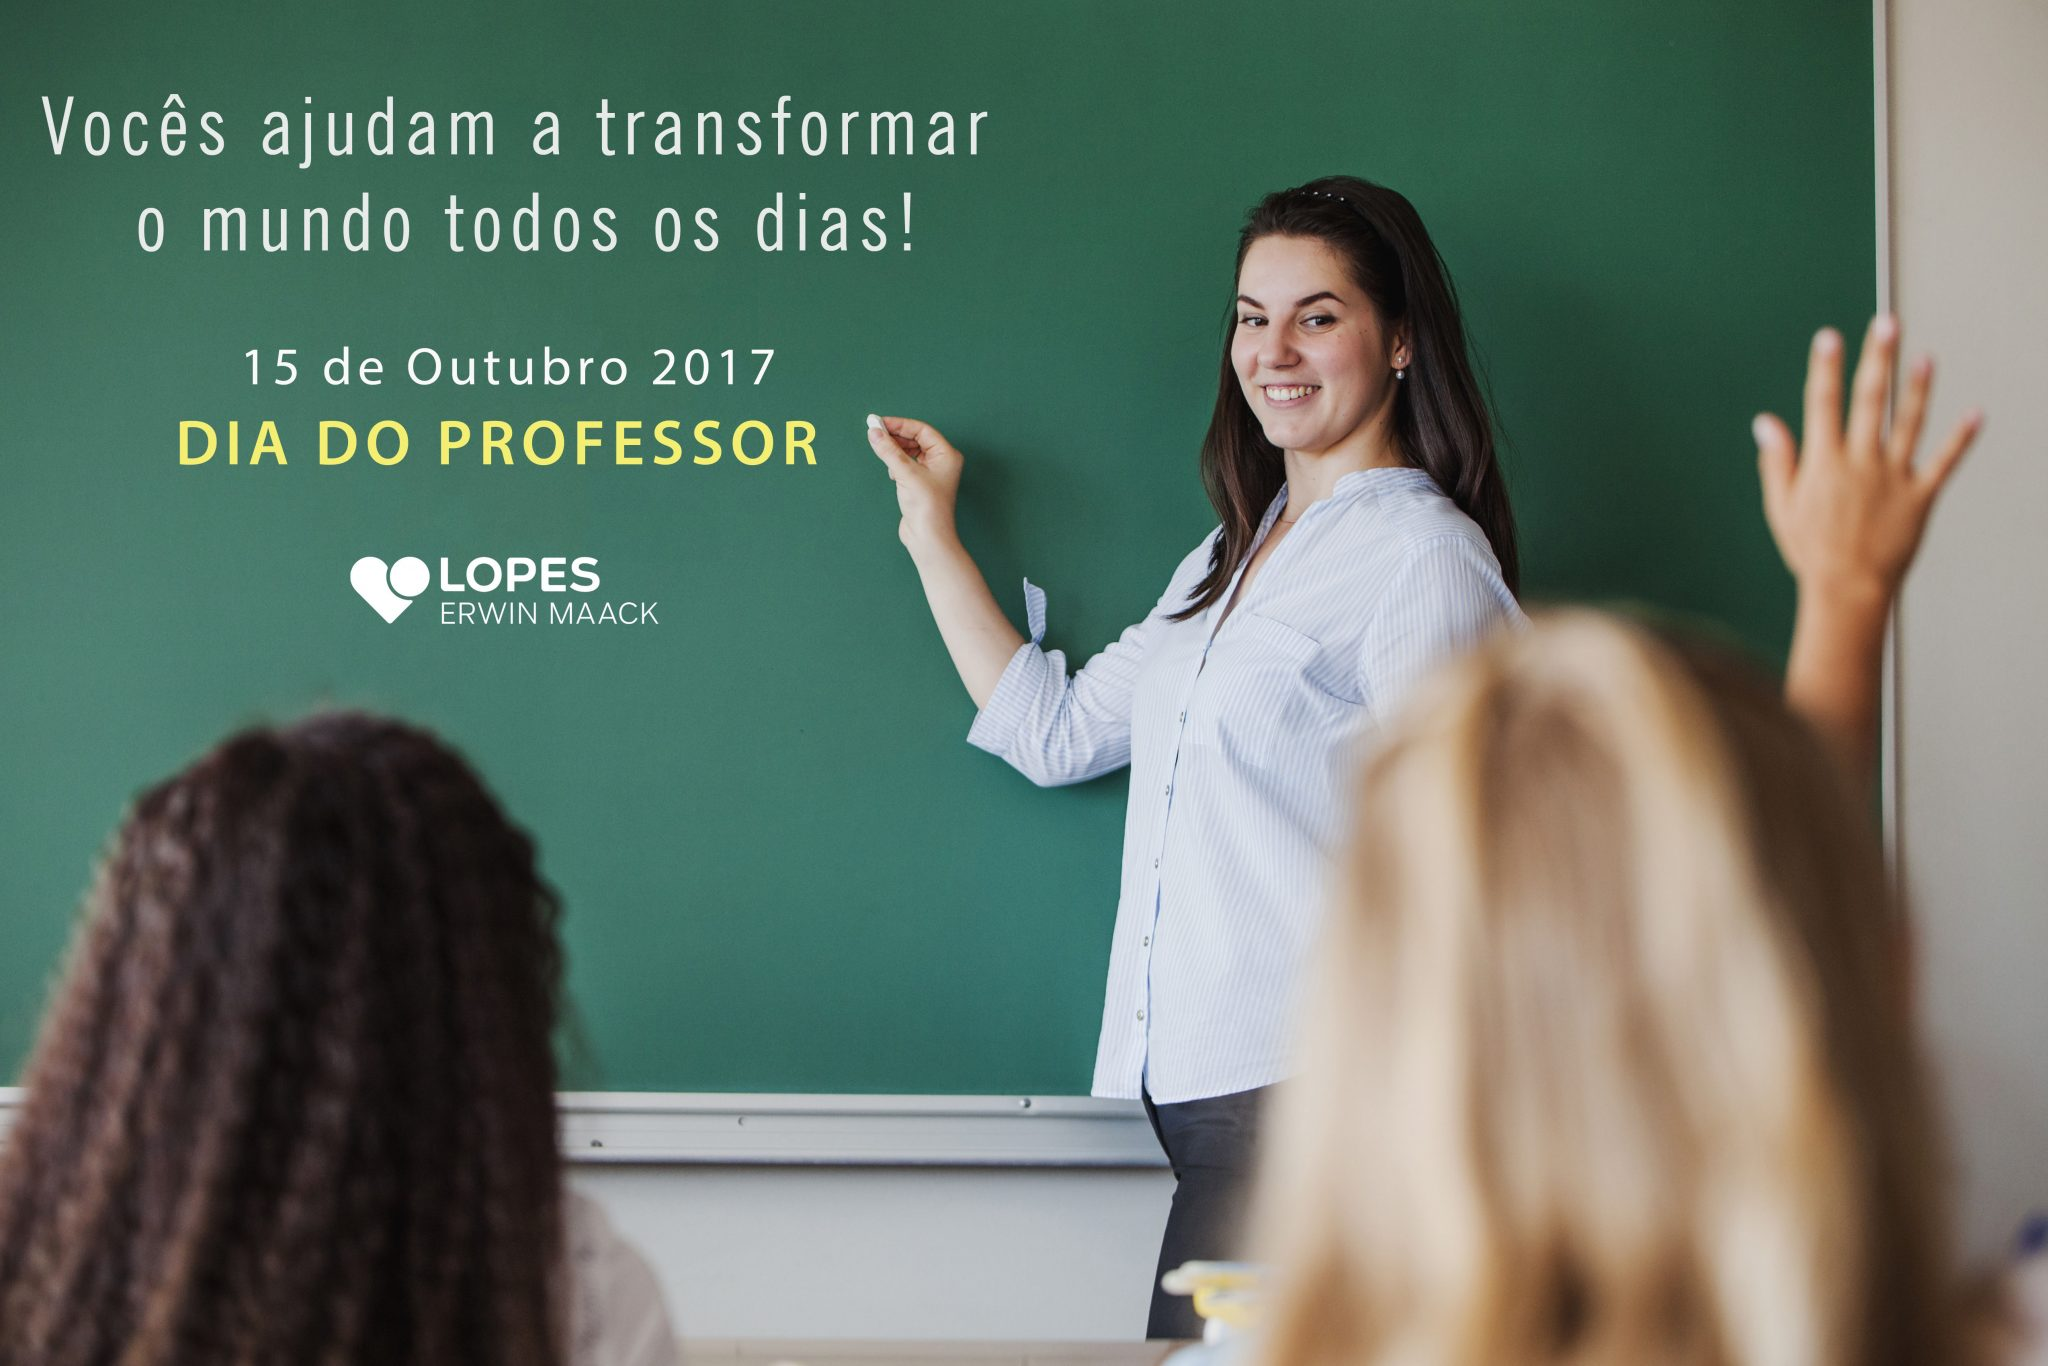 dia-do-professor